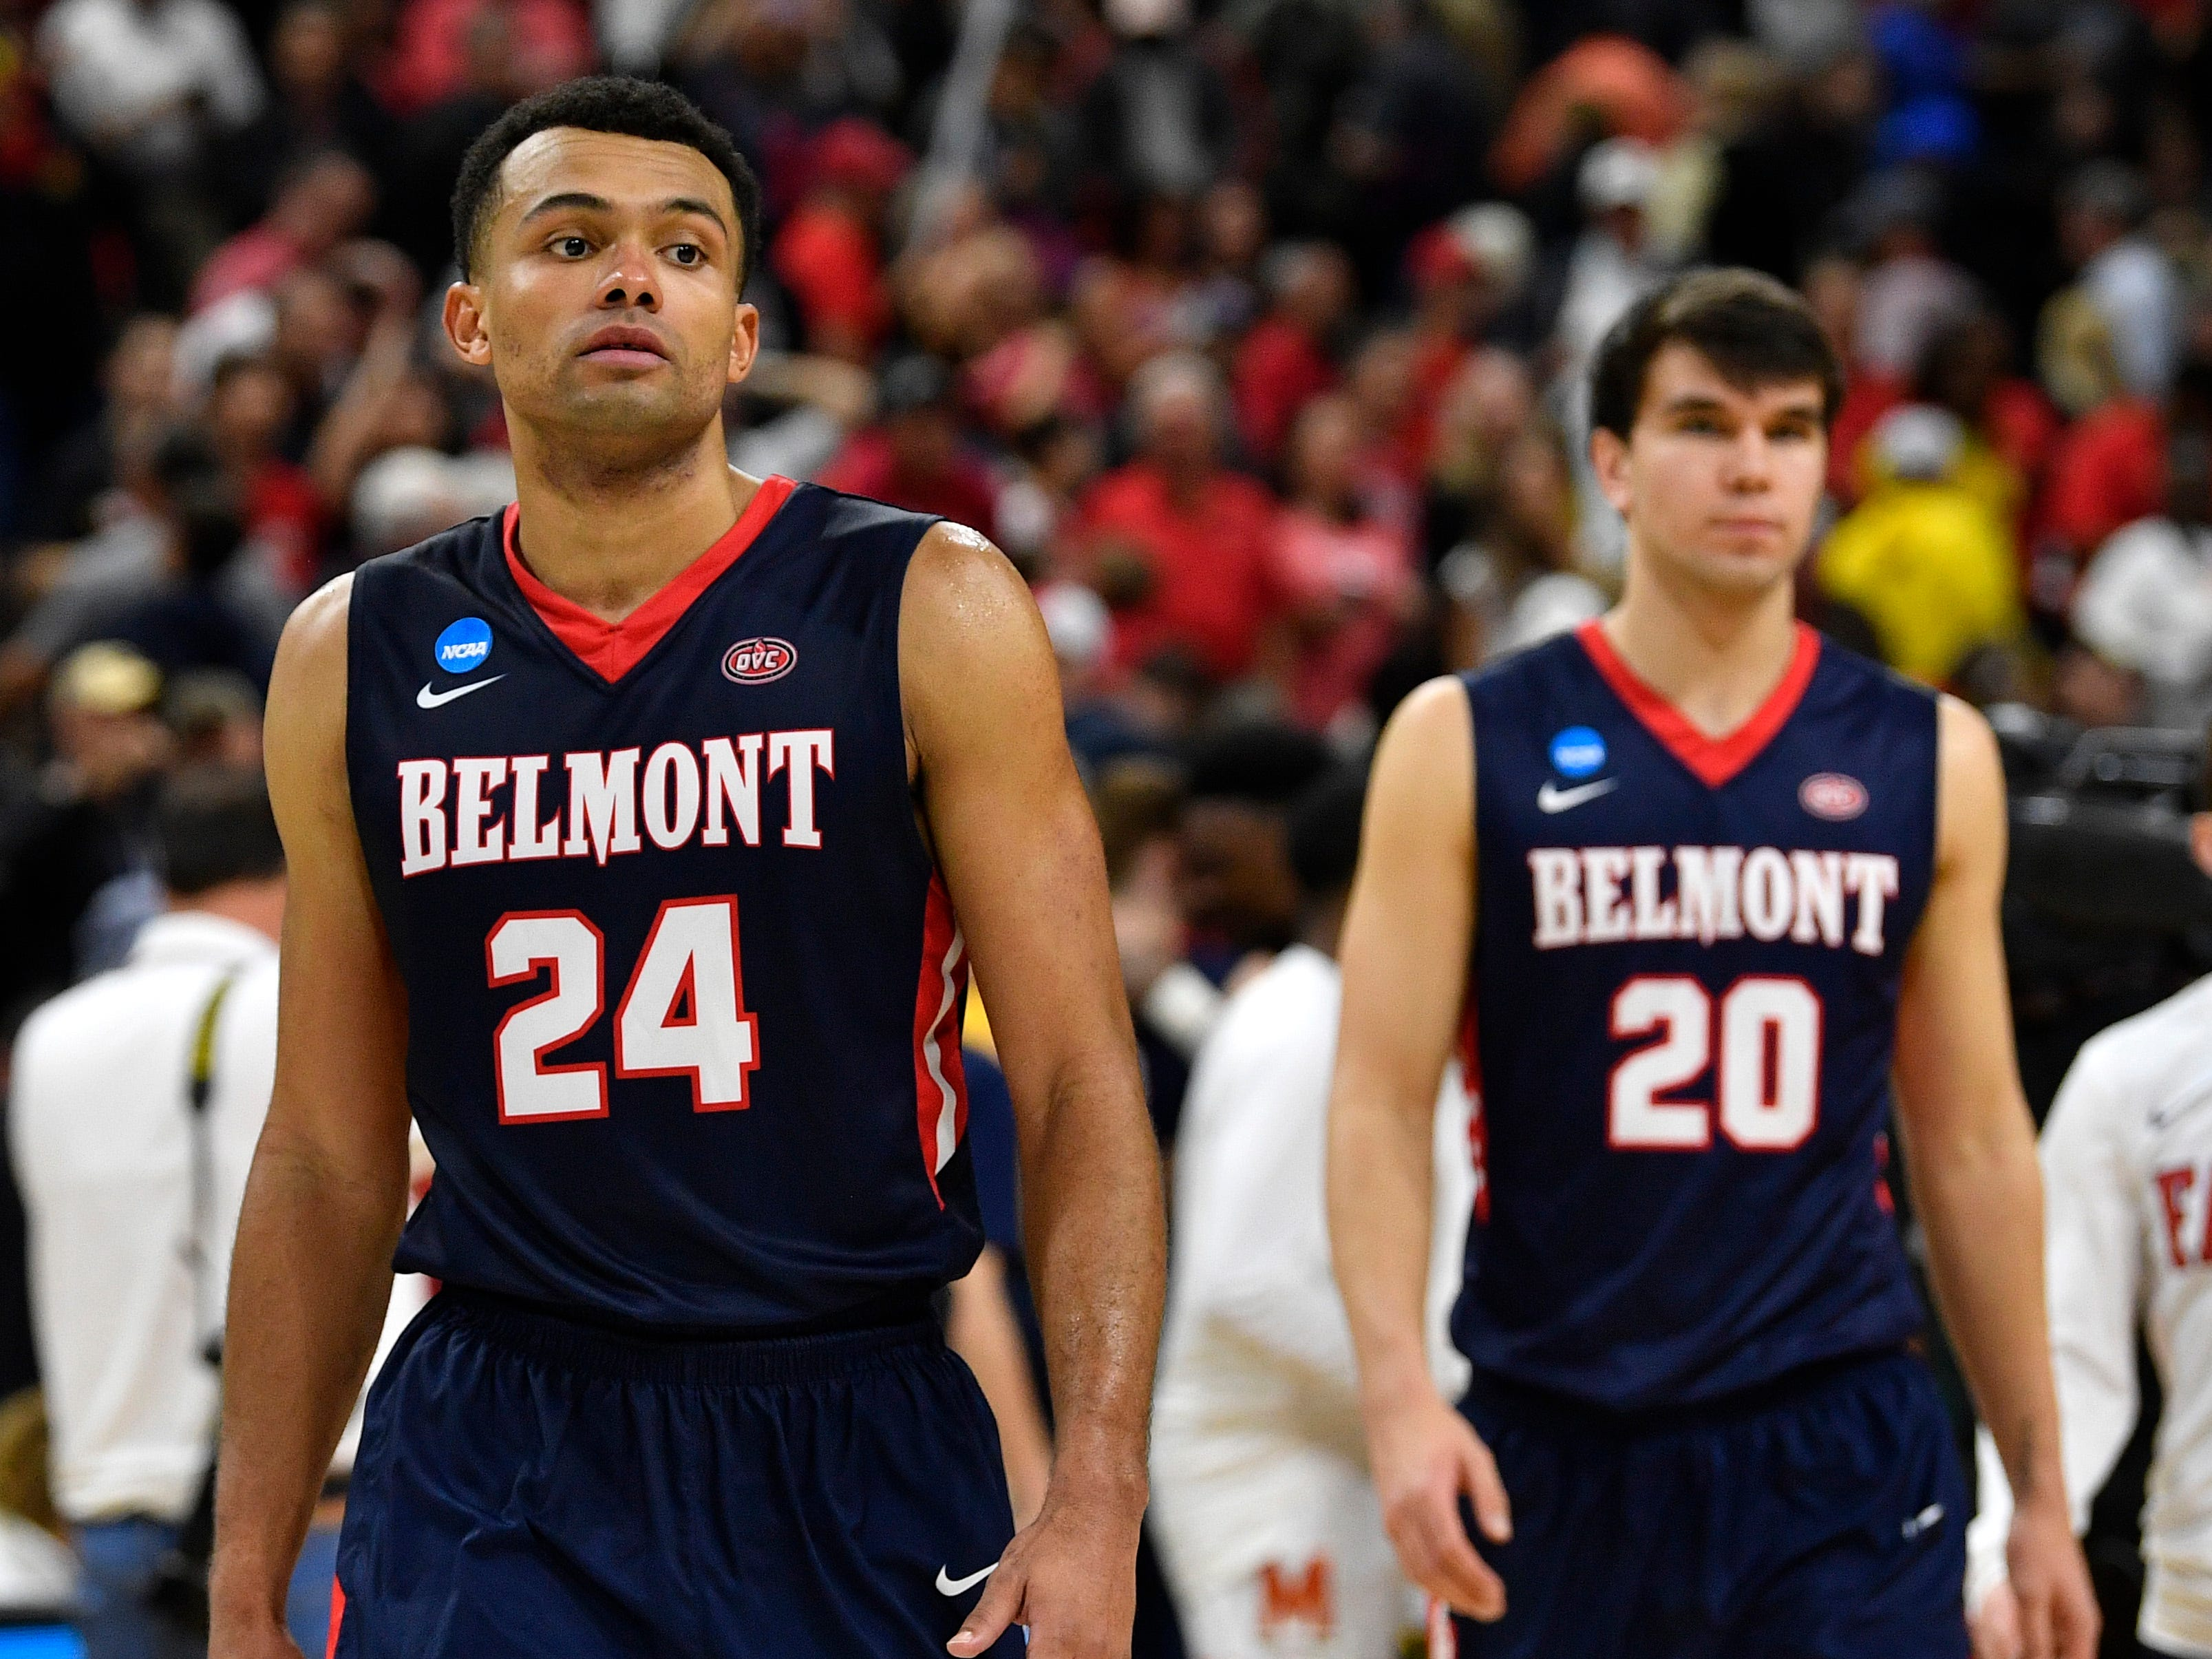 Belmont guards Michael Benkert (24) and Tate Pierson (20) react after the loss to Maryland in their first-round NCAA college basketball tournament game at VyStar Veterans Memorial Arena in Jacksonville, Fla., Thursday, March 21, 2019.